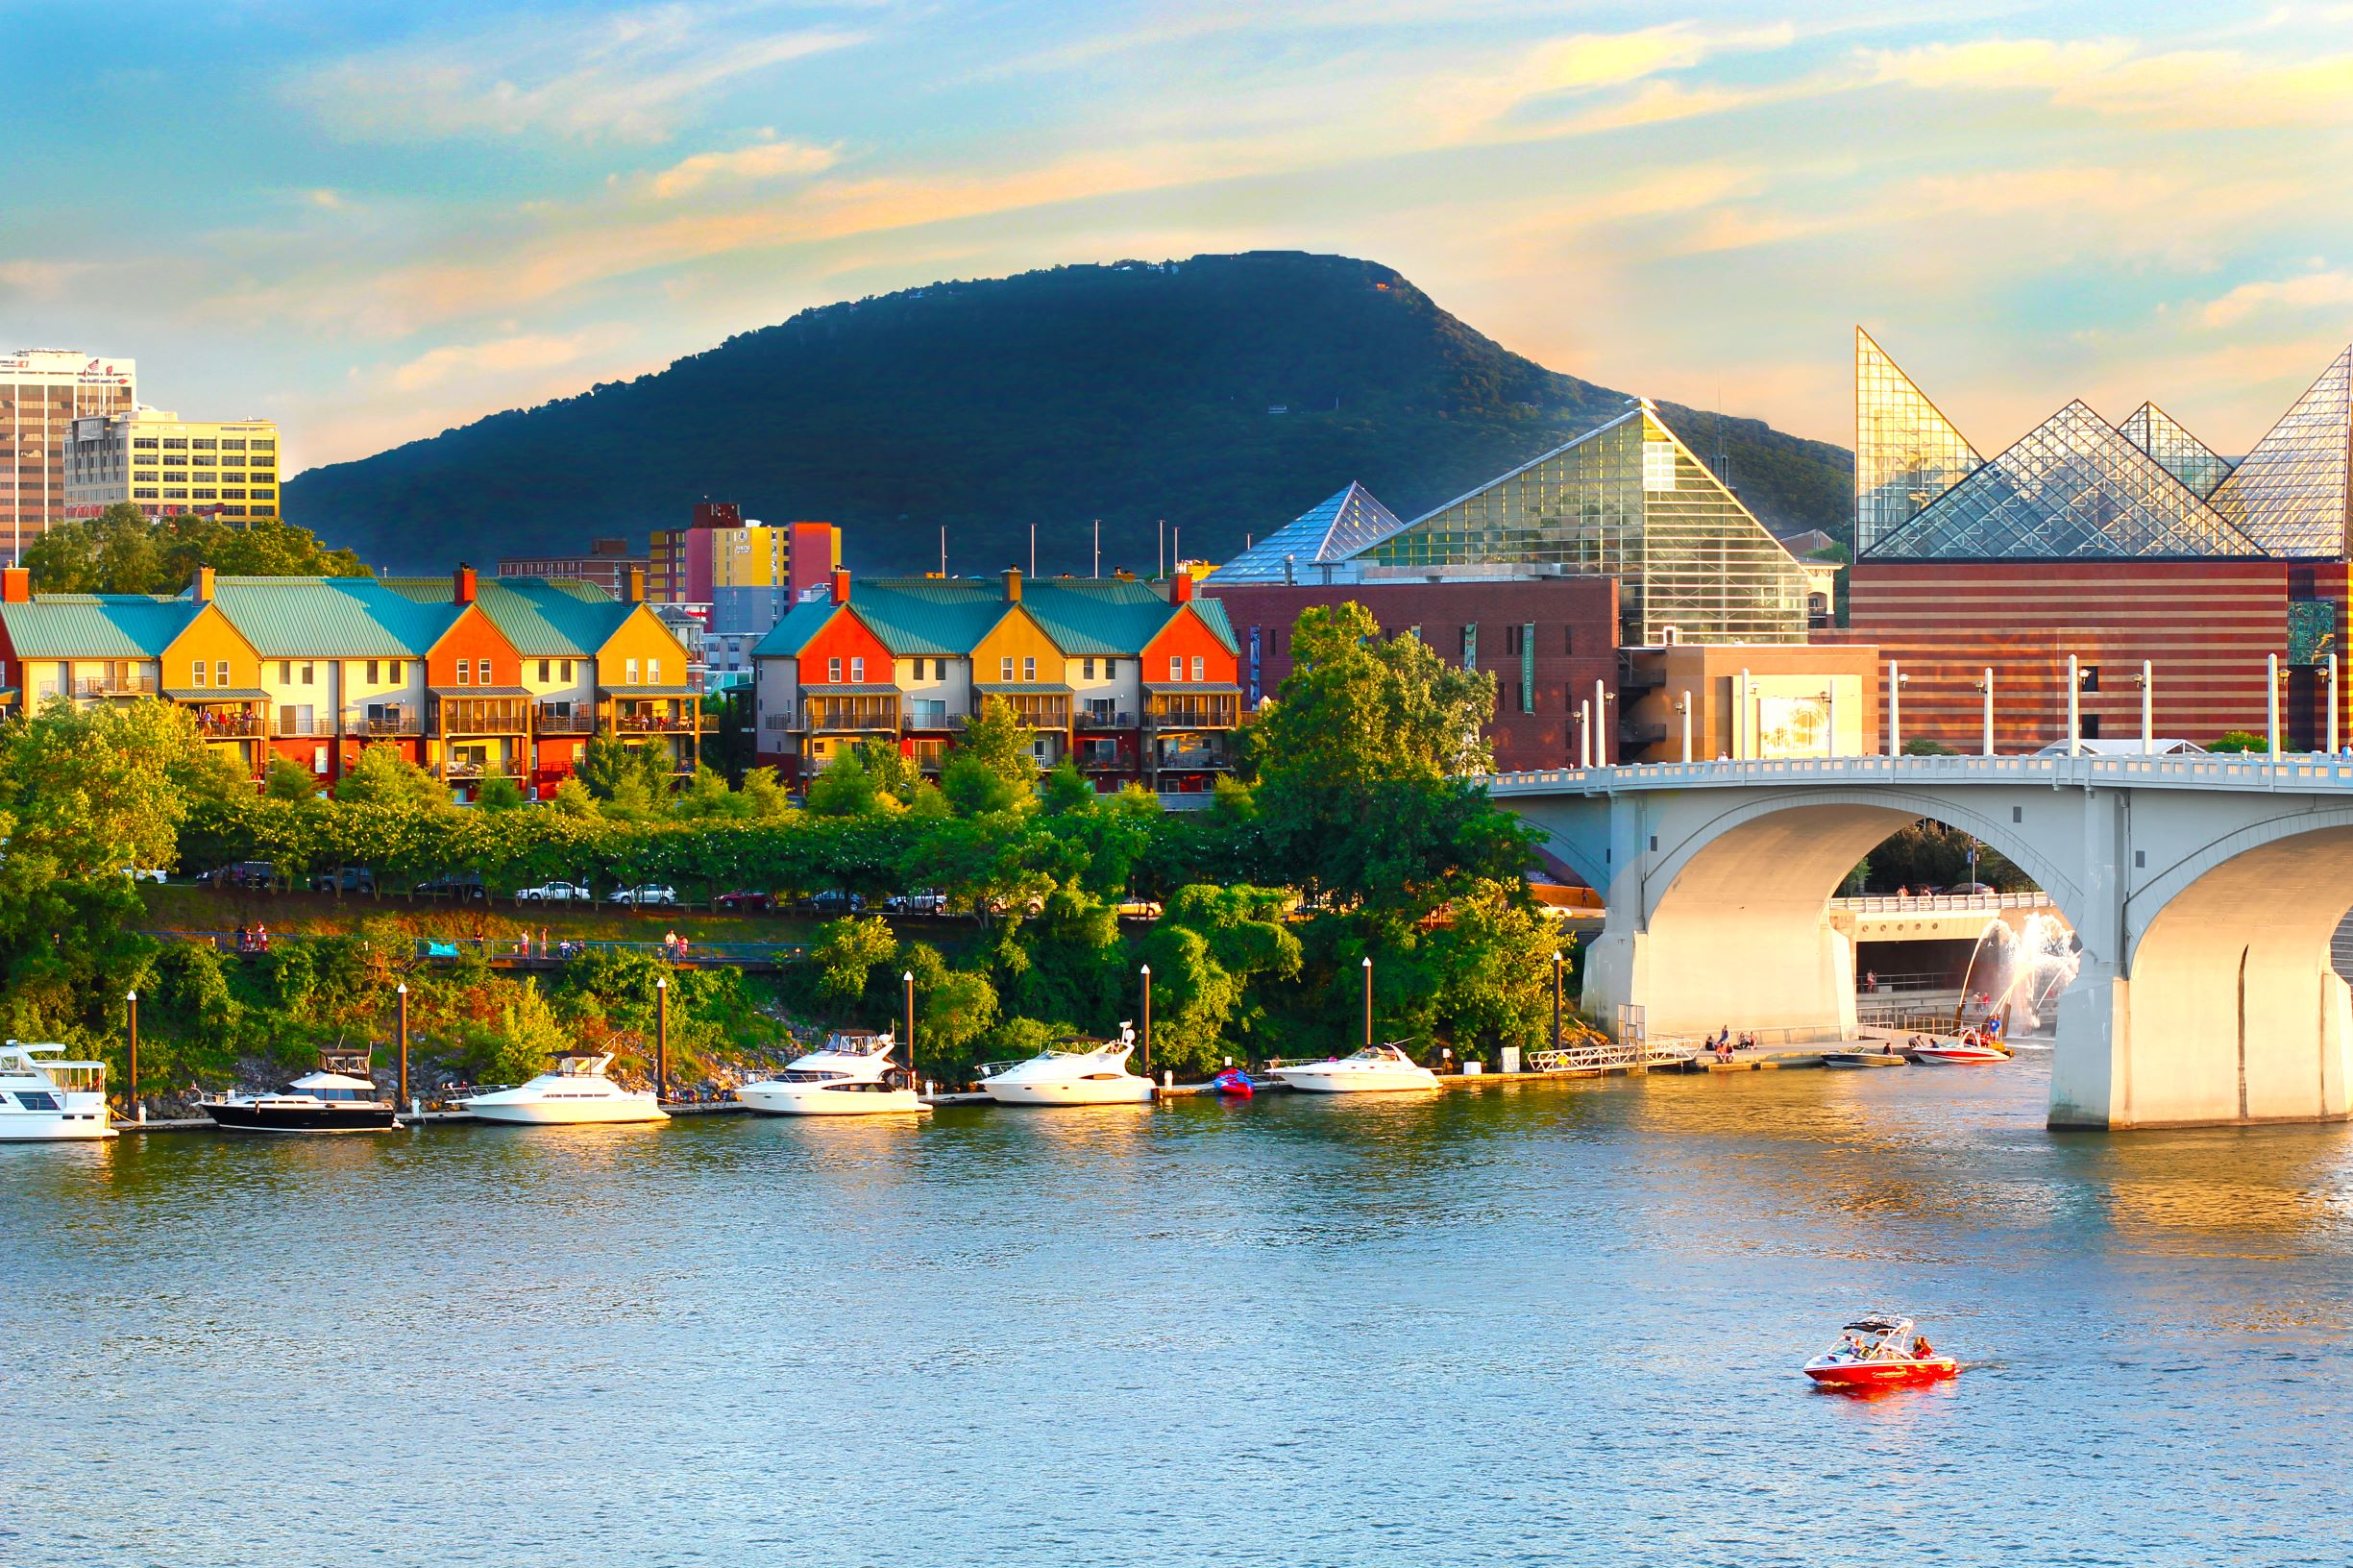 Why is Chattanooga a Good Place to Retire?